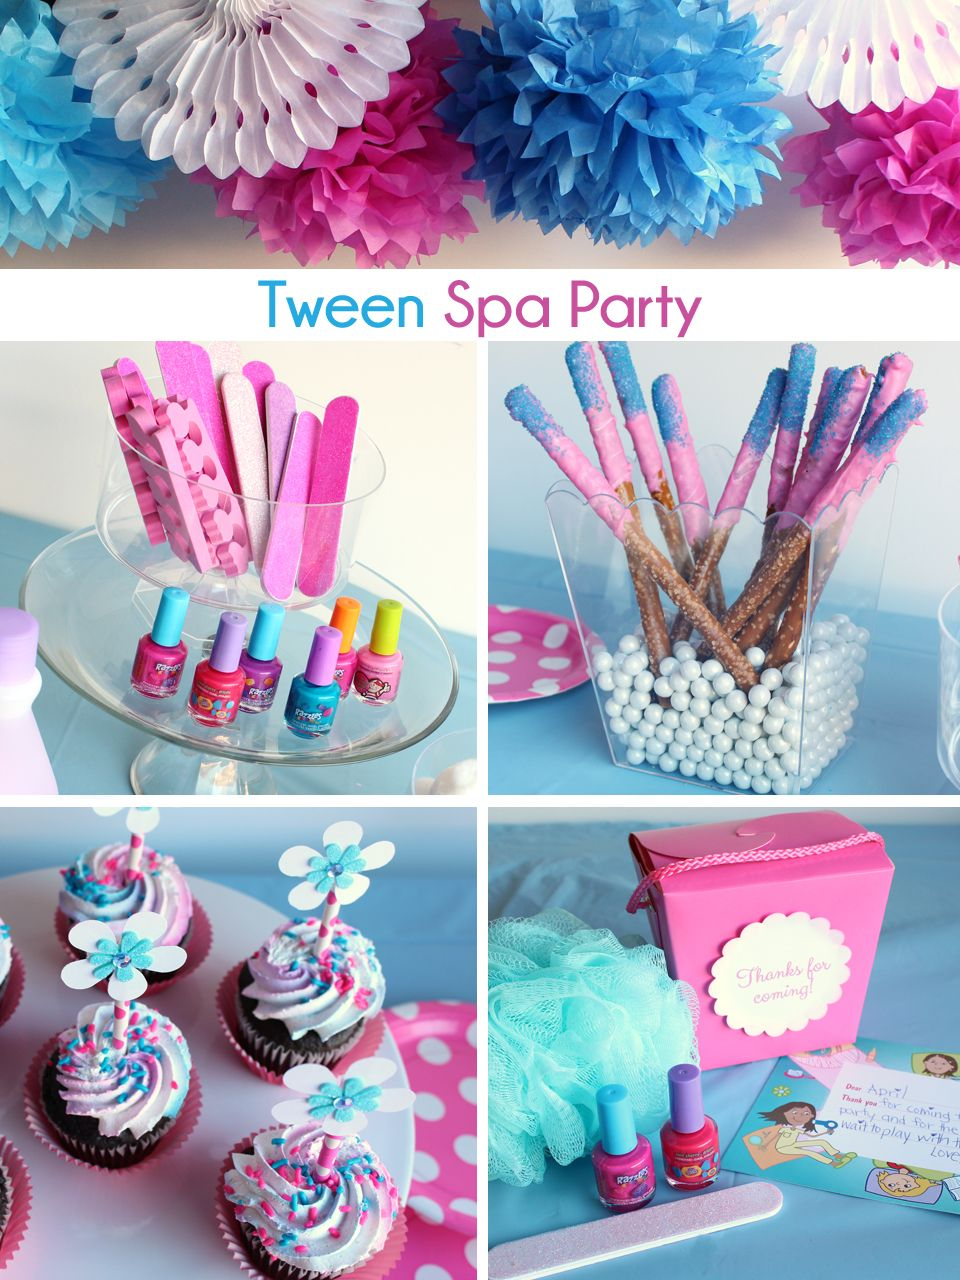 tween spa party ideas - décor, activities and sweets to serve! | spa